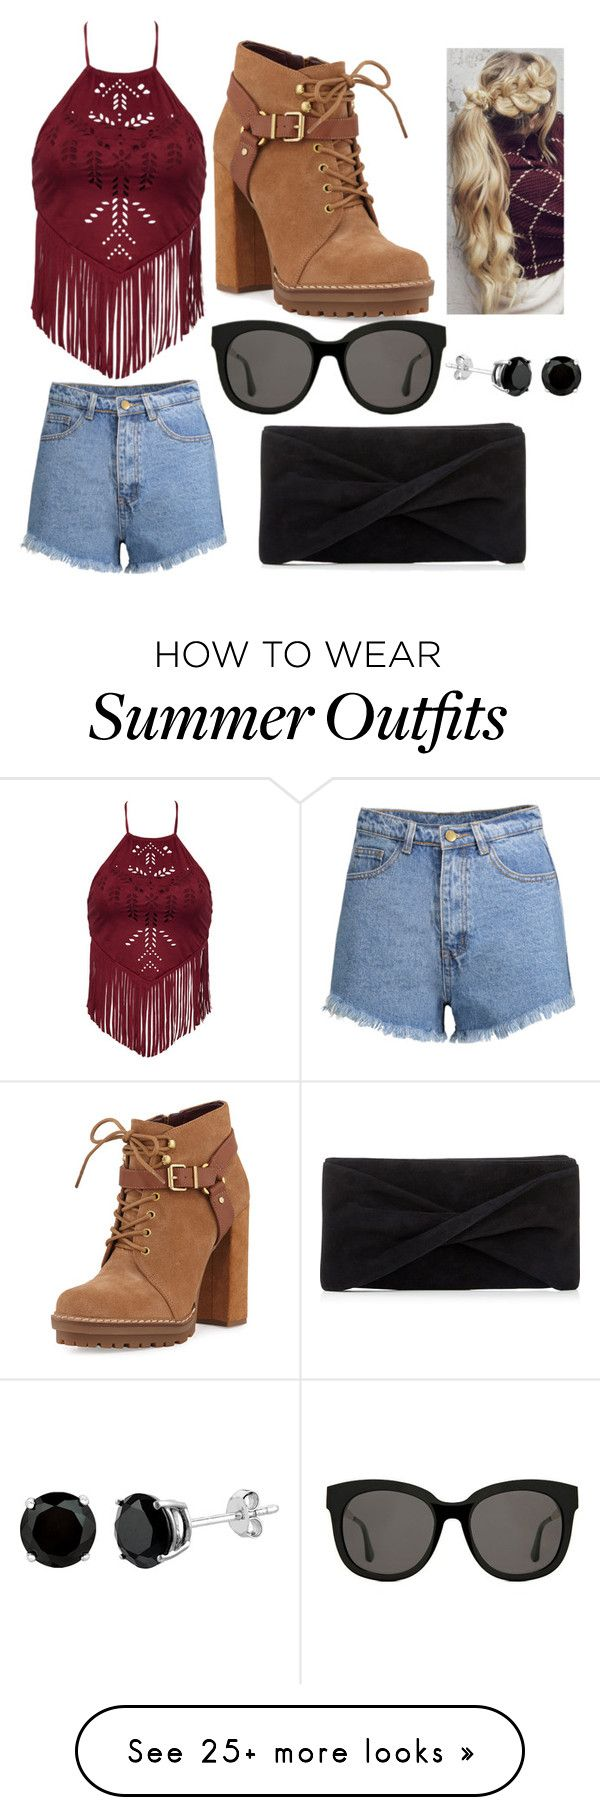 """Summer Outfit: Kai"" by scarletpeak on Polyvore featuring BCBGeneratio..."